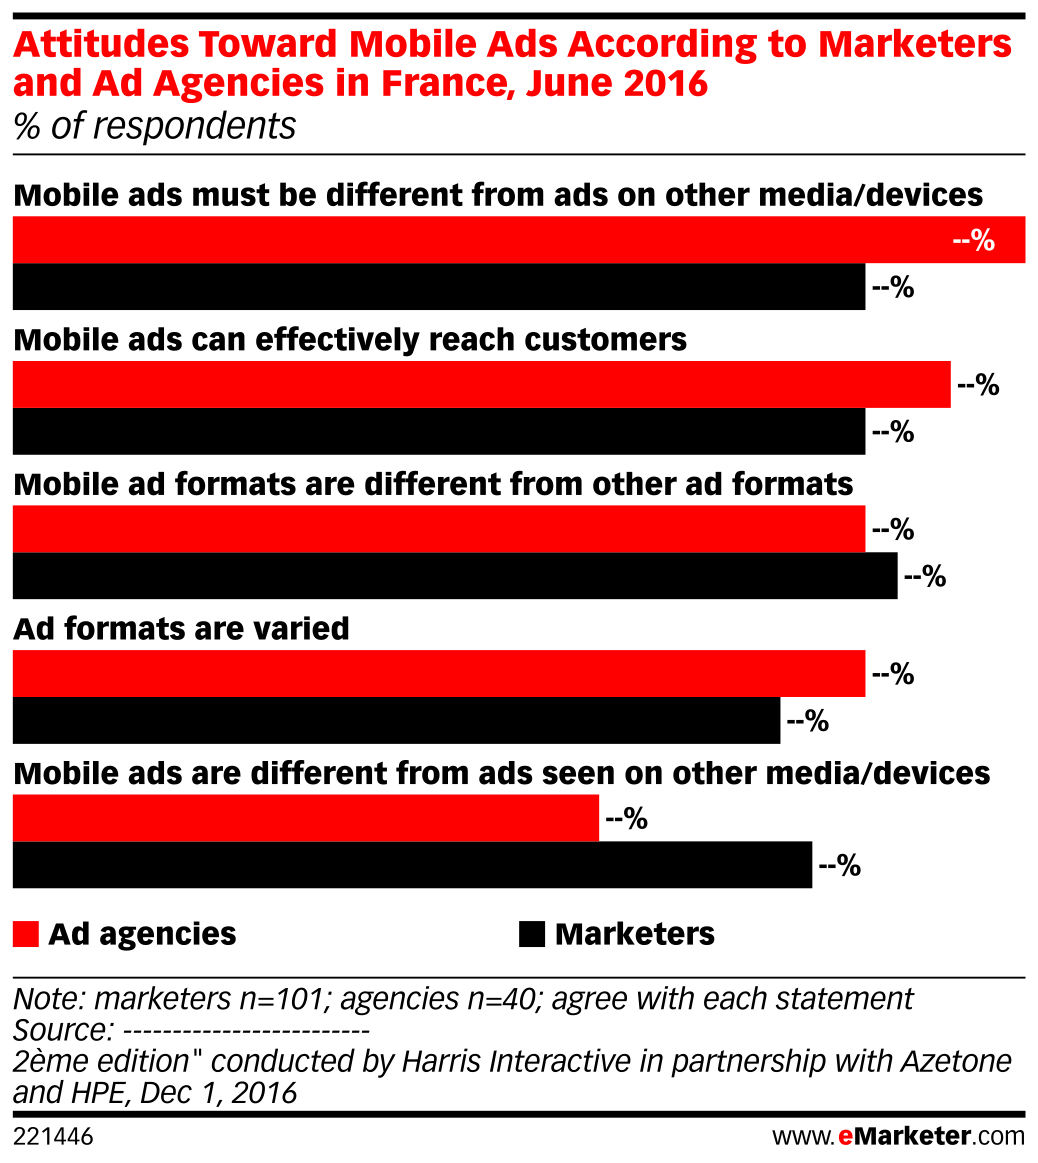 Attitudes Toward Mobile Ads According to Marketers and Ad Agencies in France, June 2016 (% of respondents)